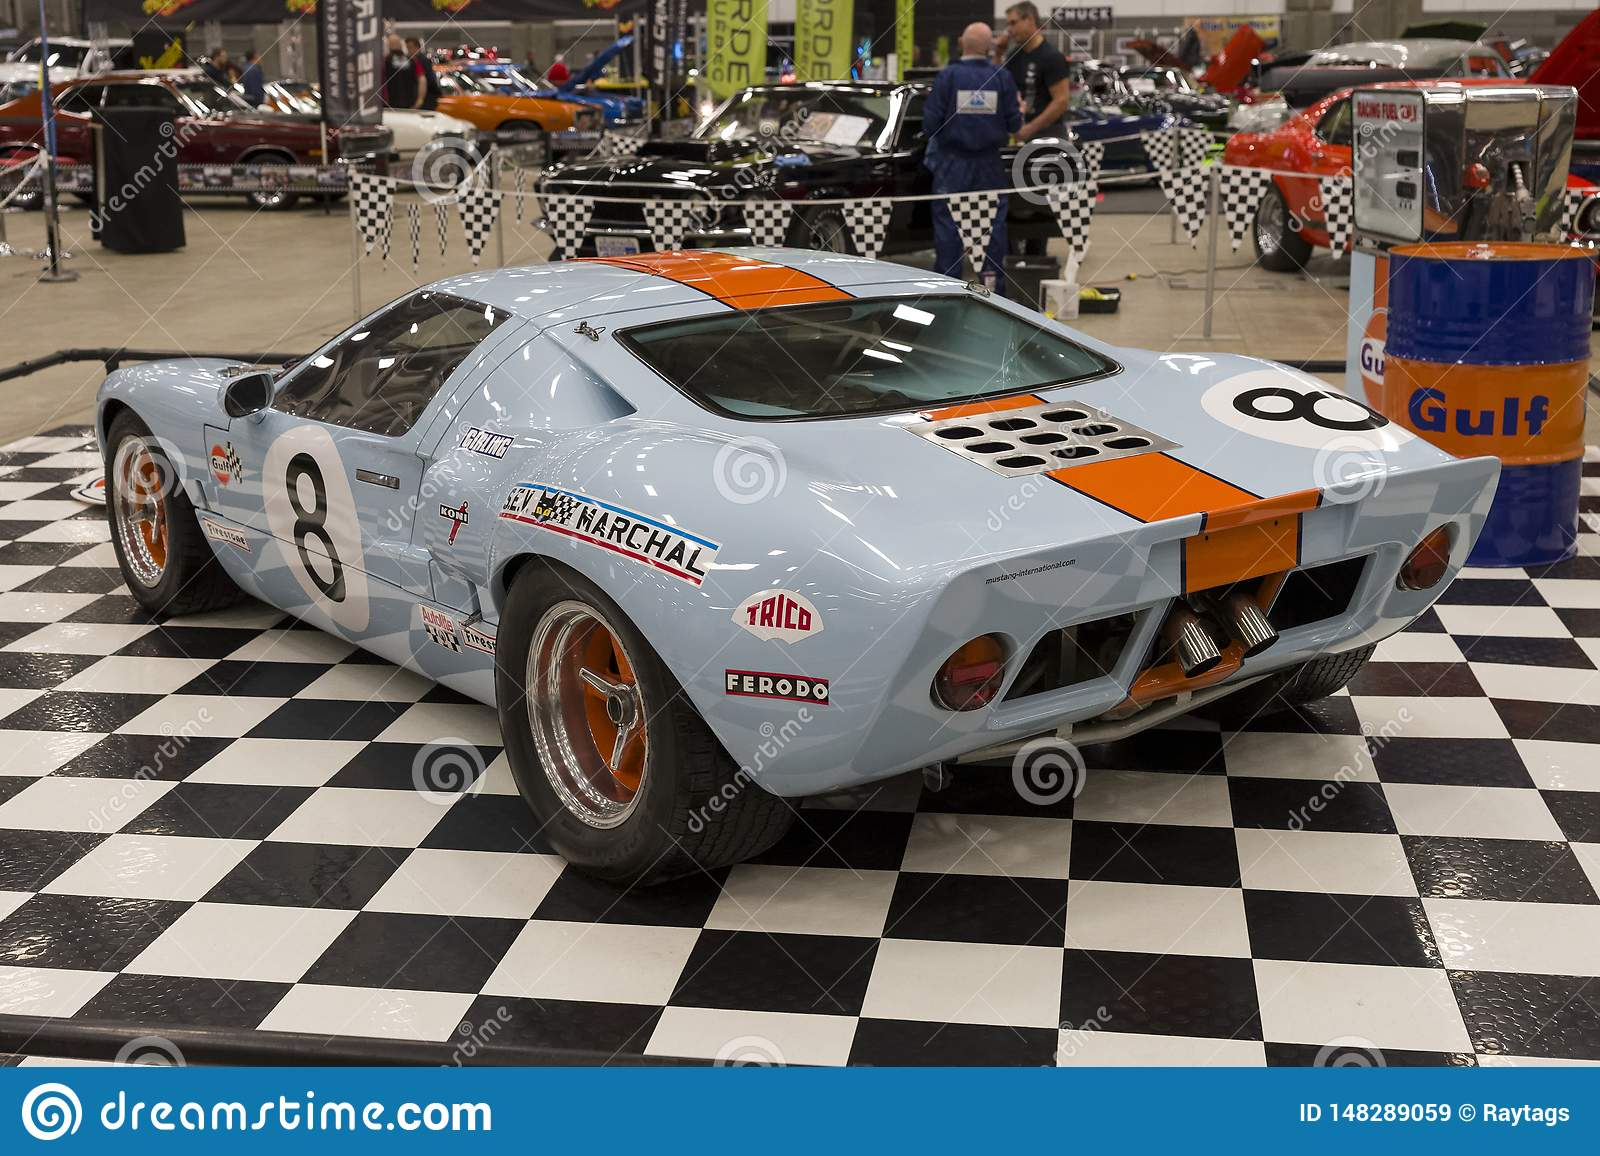 Ford Gt40 Rear Side View Editorial Stock Image Image Of Decals 148289059